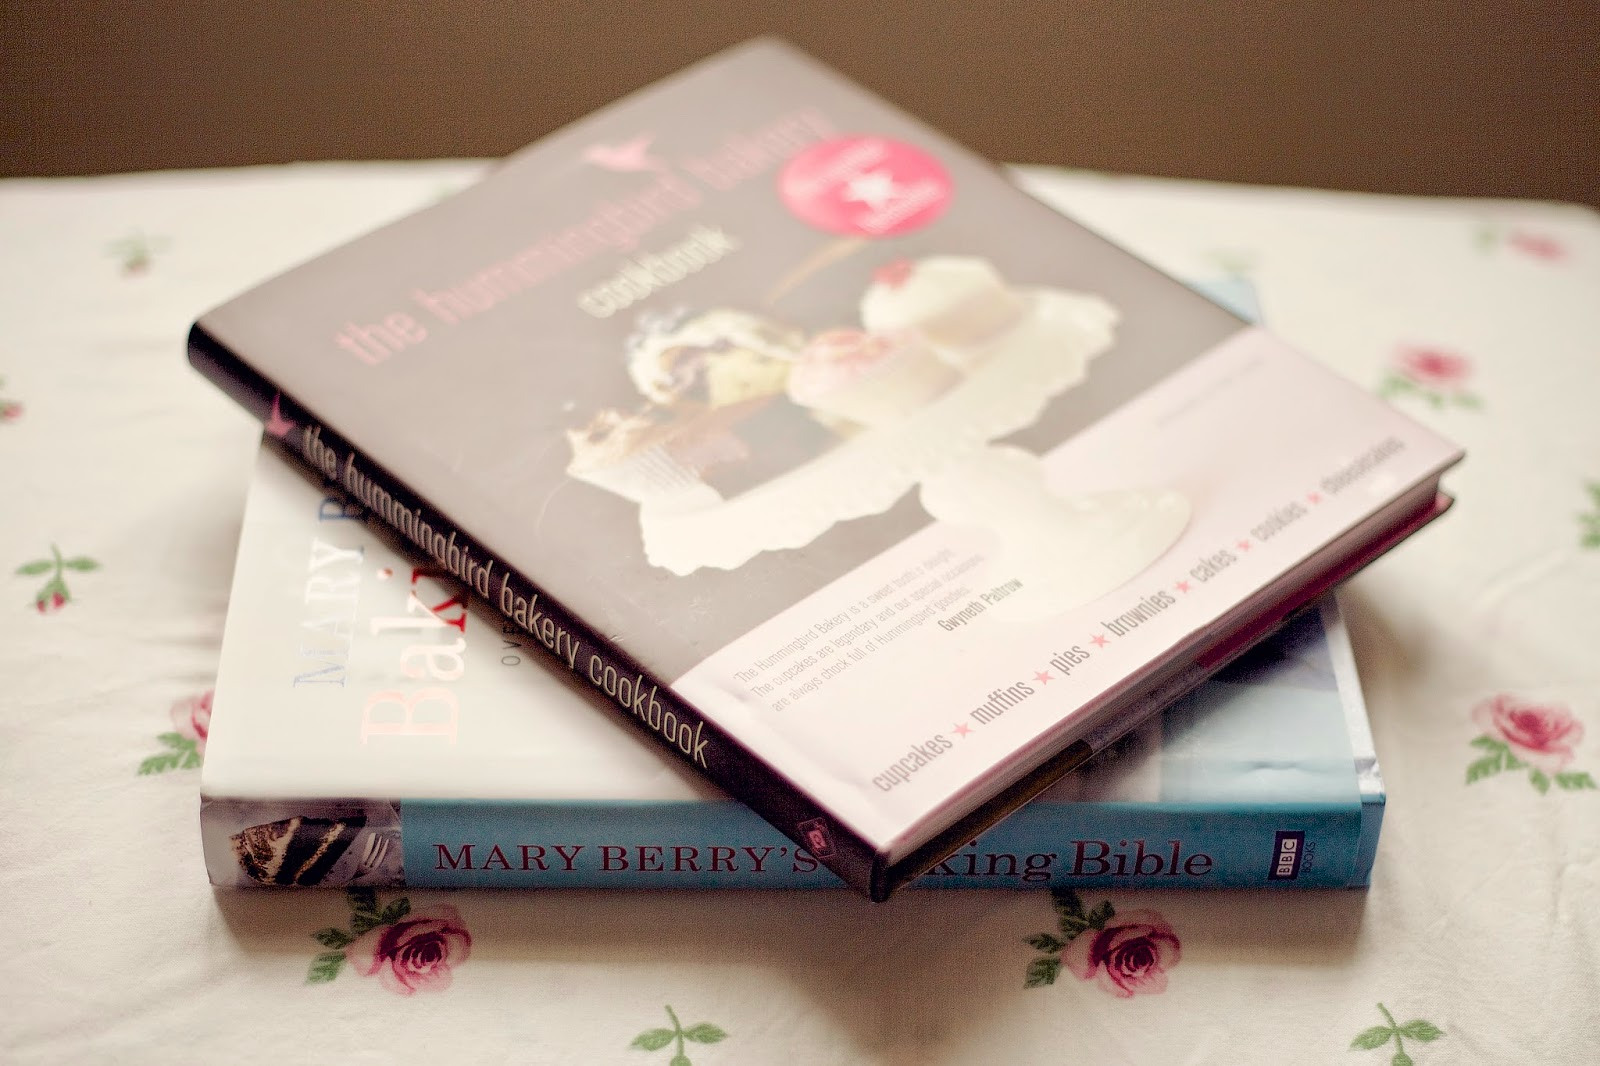 Hummingbird Bakery and Mary Berry cookbooks